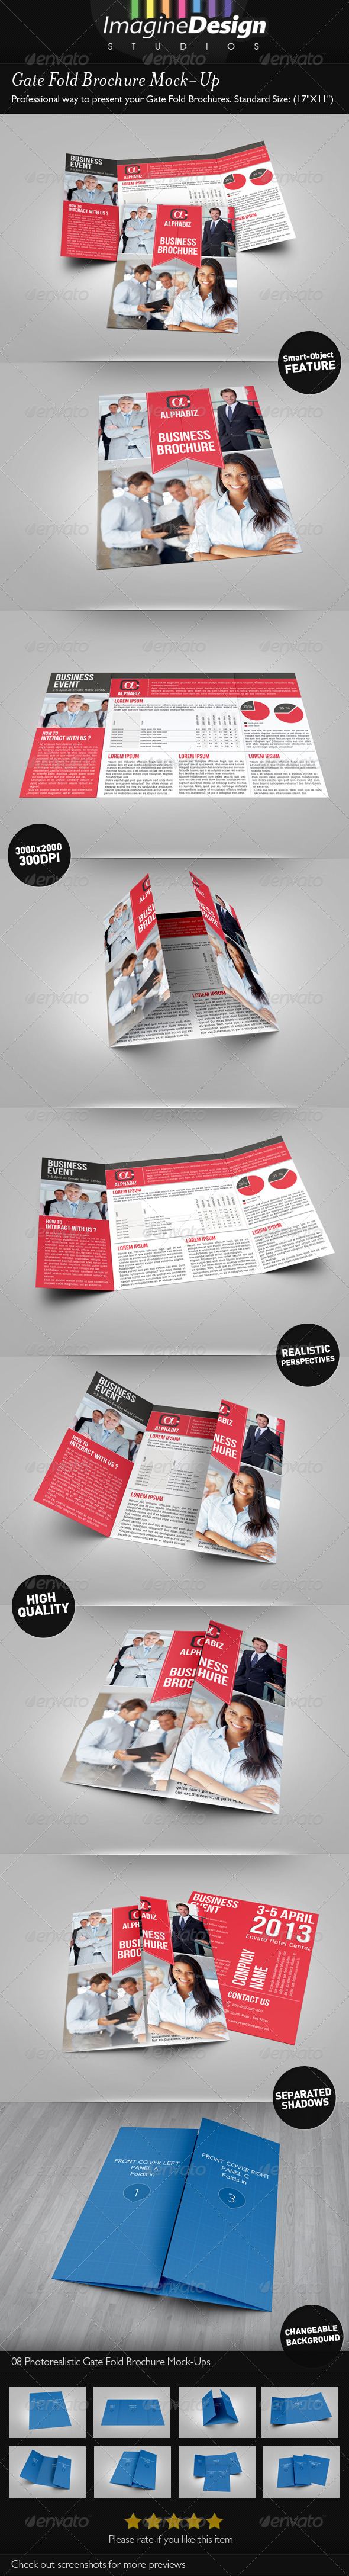 Gatefold Graphics, Designs & Templates from GraphicRiver